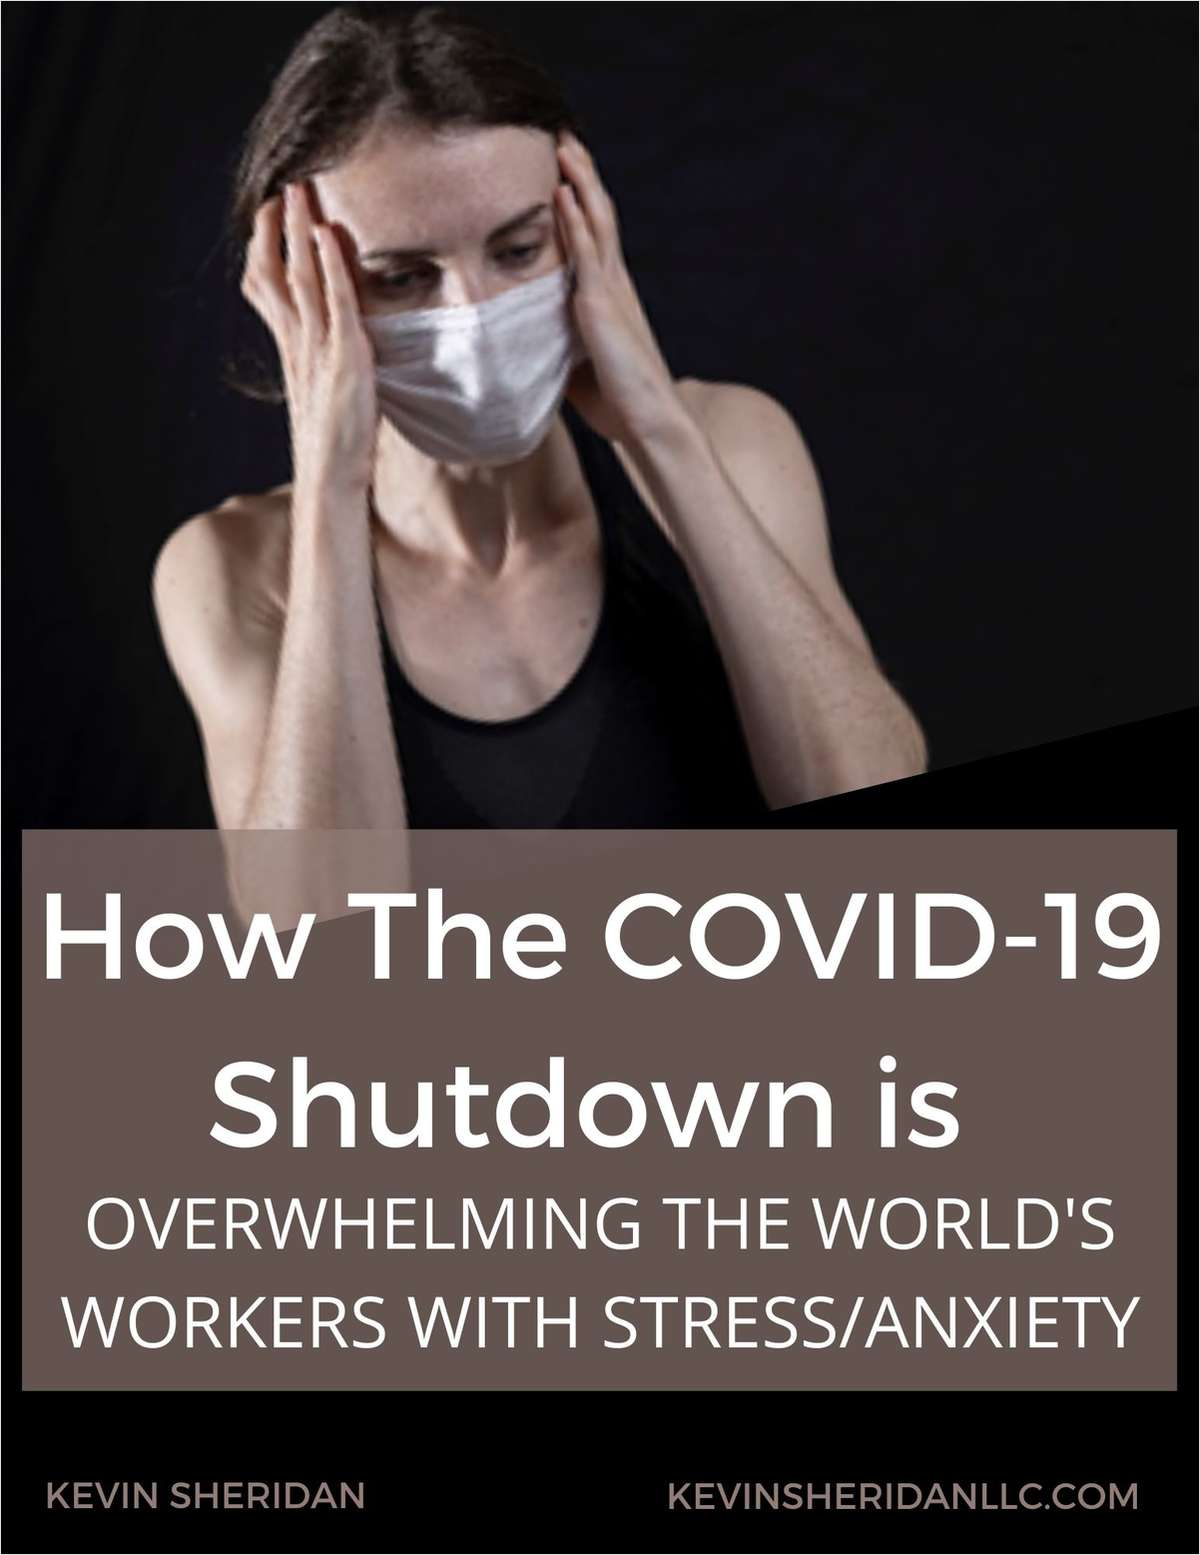 How The COVID-19 Shutdown Is Overwhelming The World's Workers With Stress/Anxiety